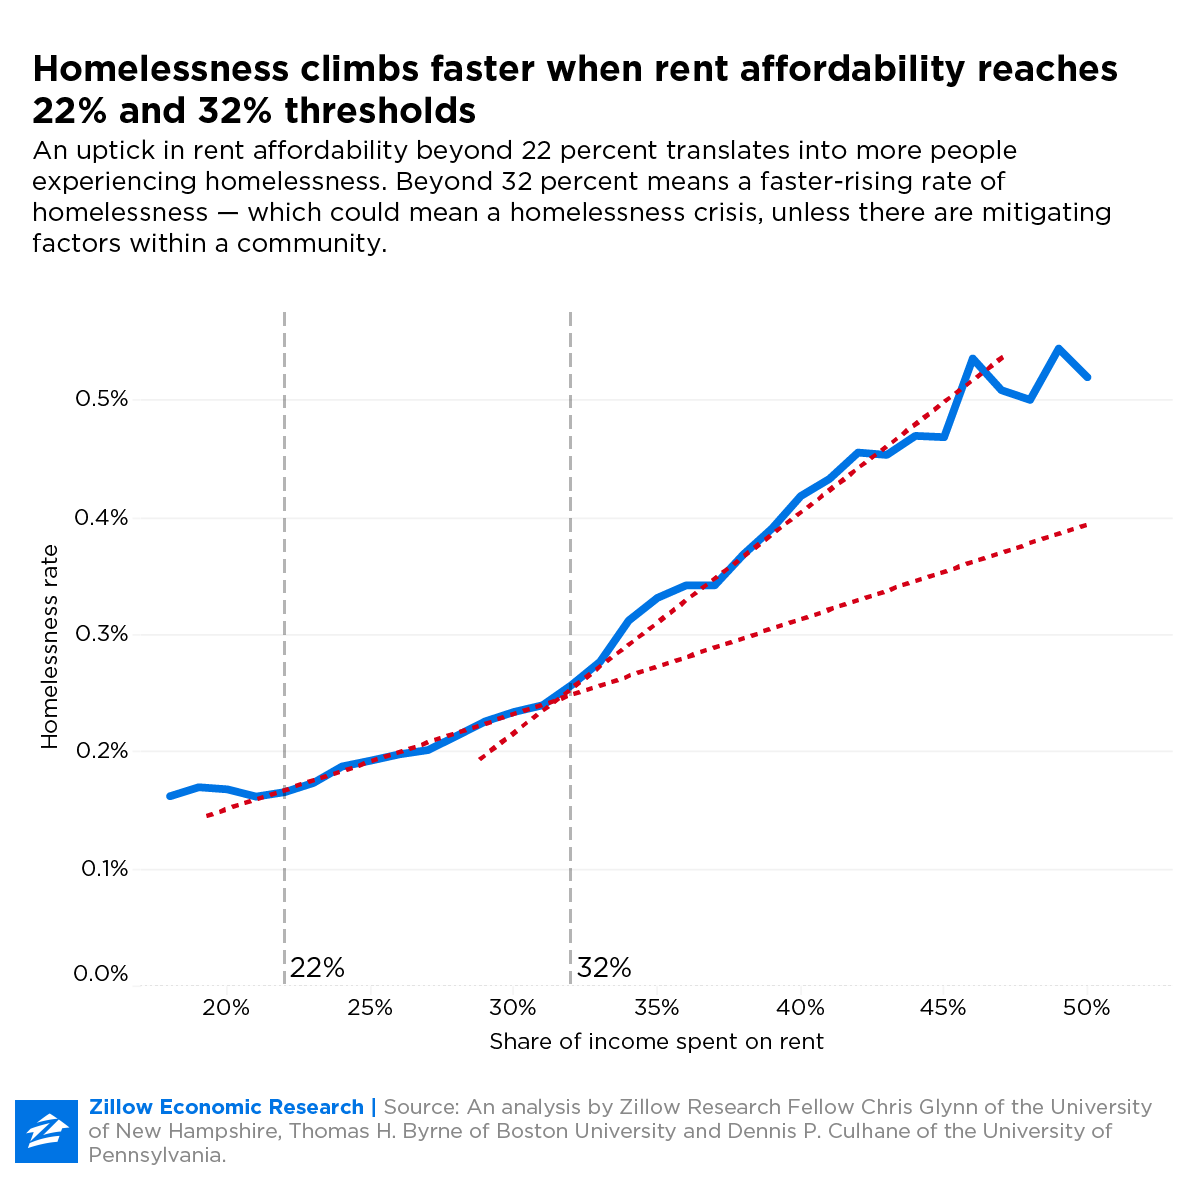 zillow housing affordability graph